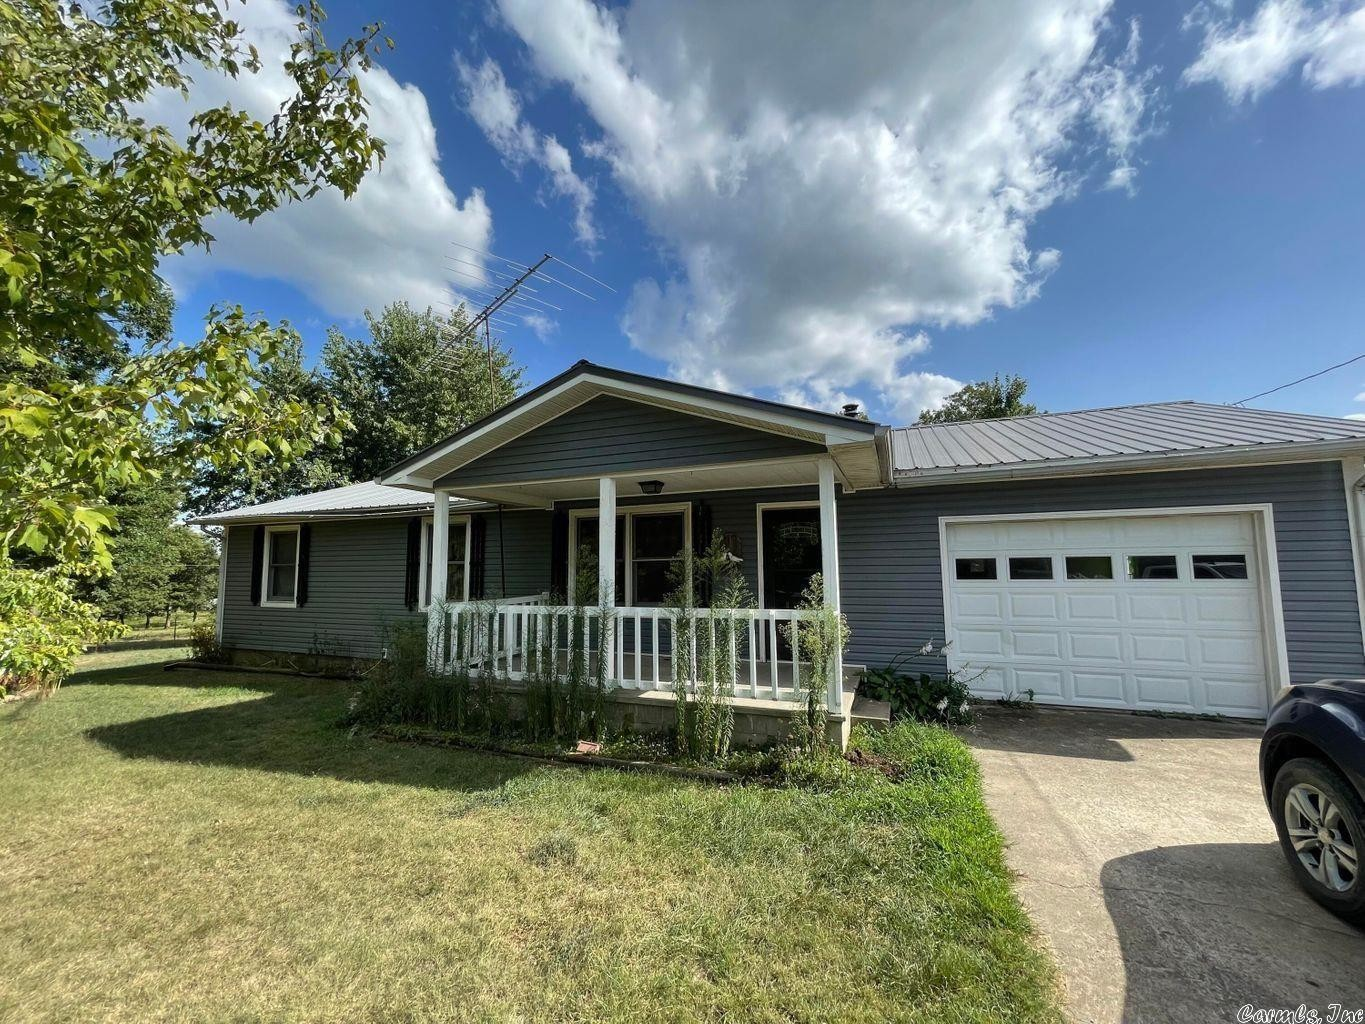 3-Bedroom House In Concord